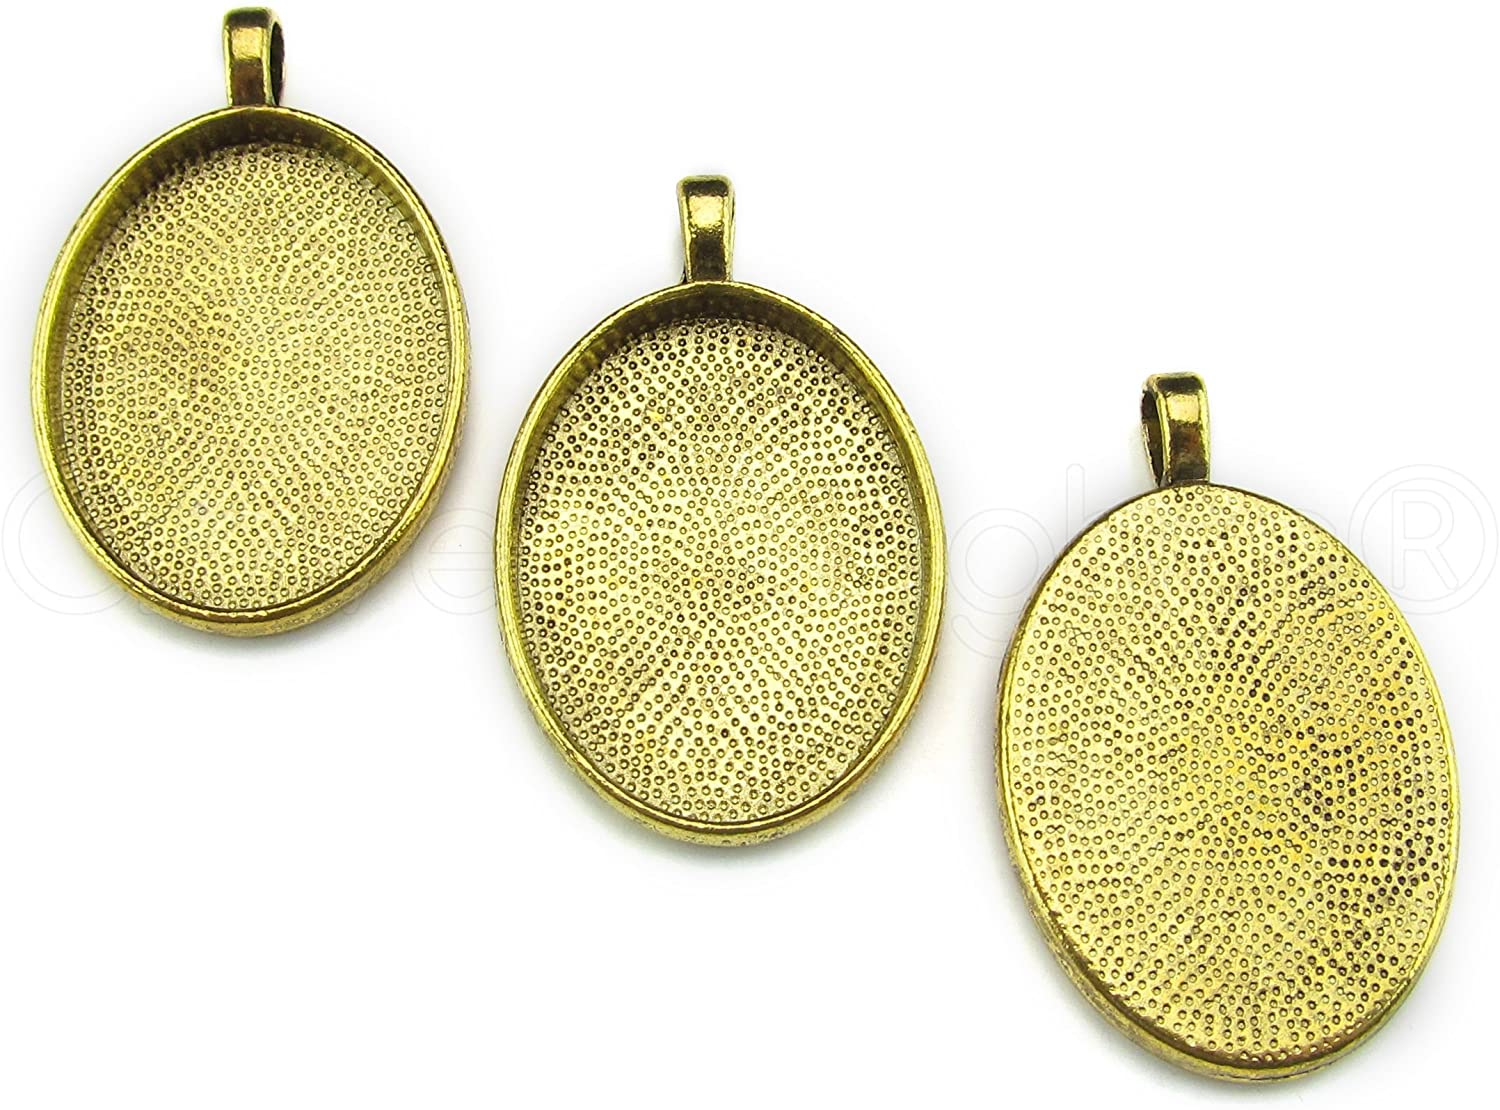 20 Pack - CleverDelights 22x30mm Oval Pendant Trays - Antique Gold Color